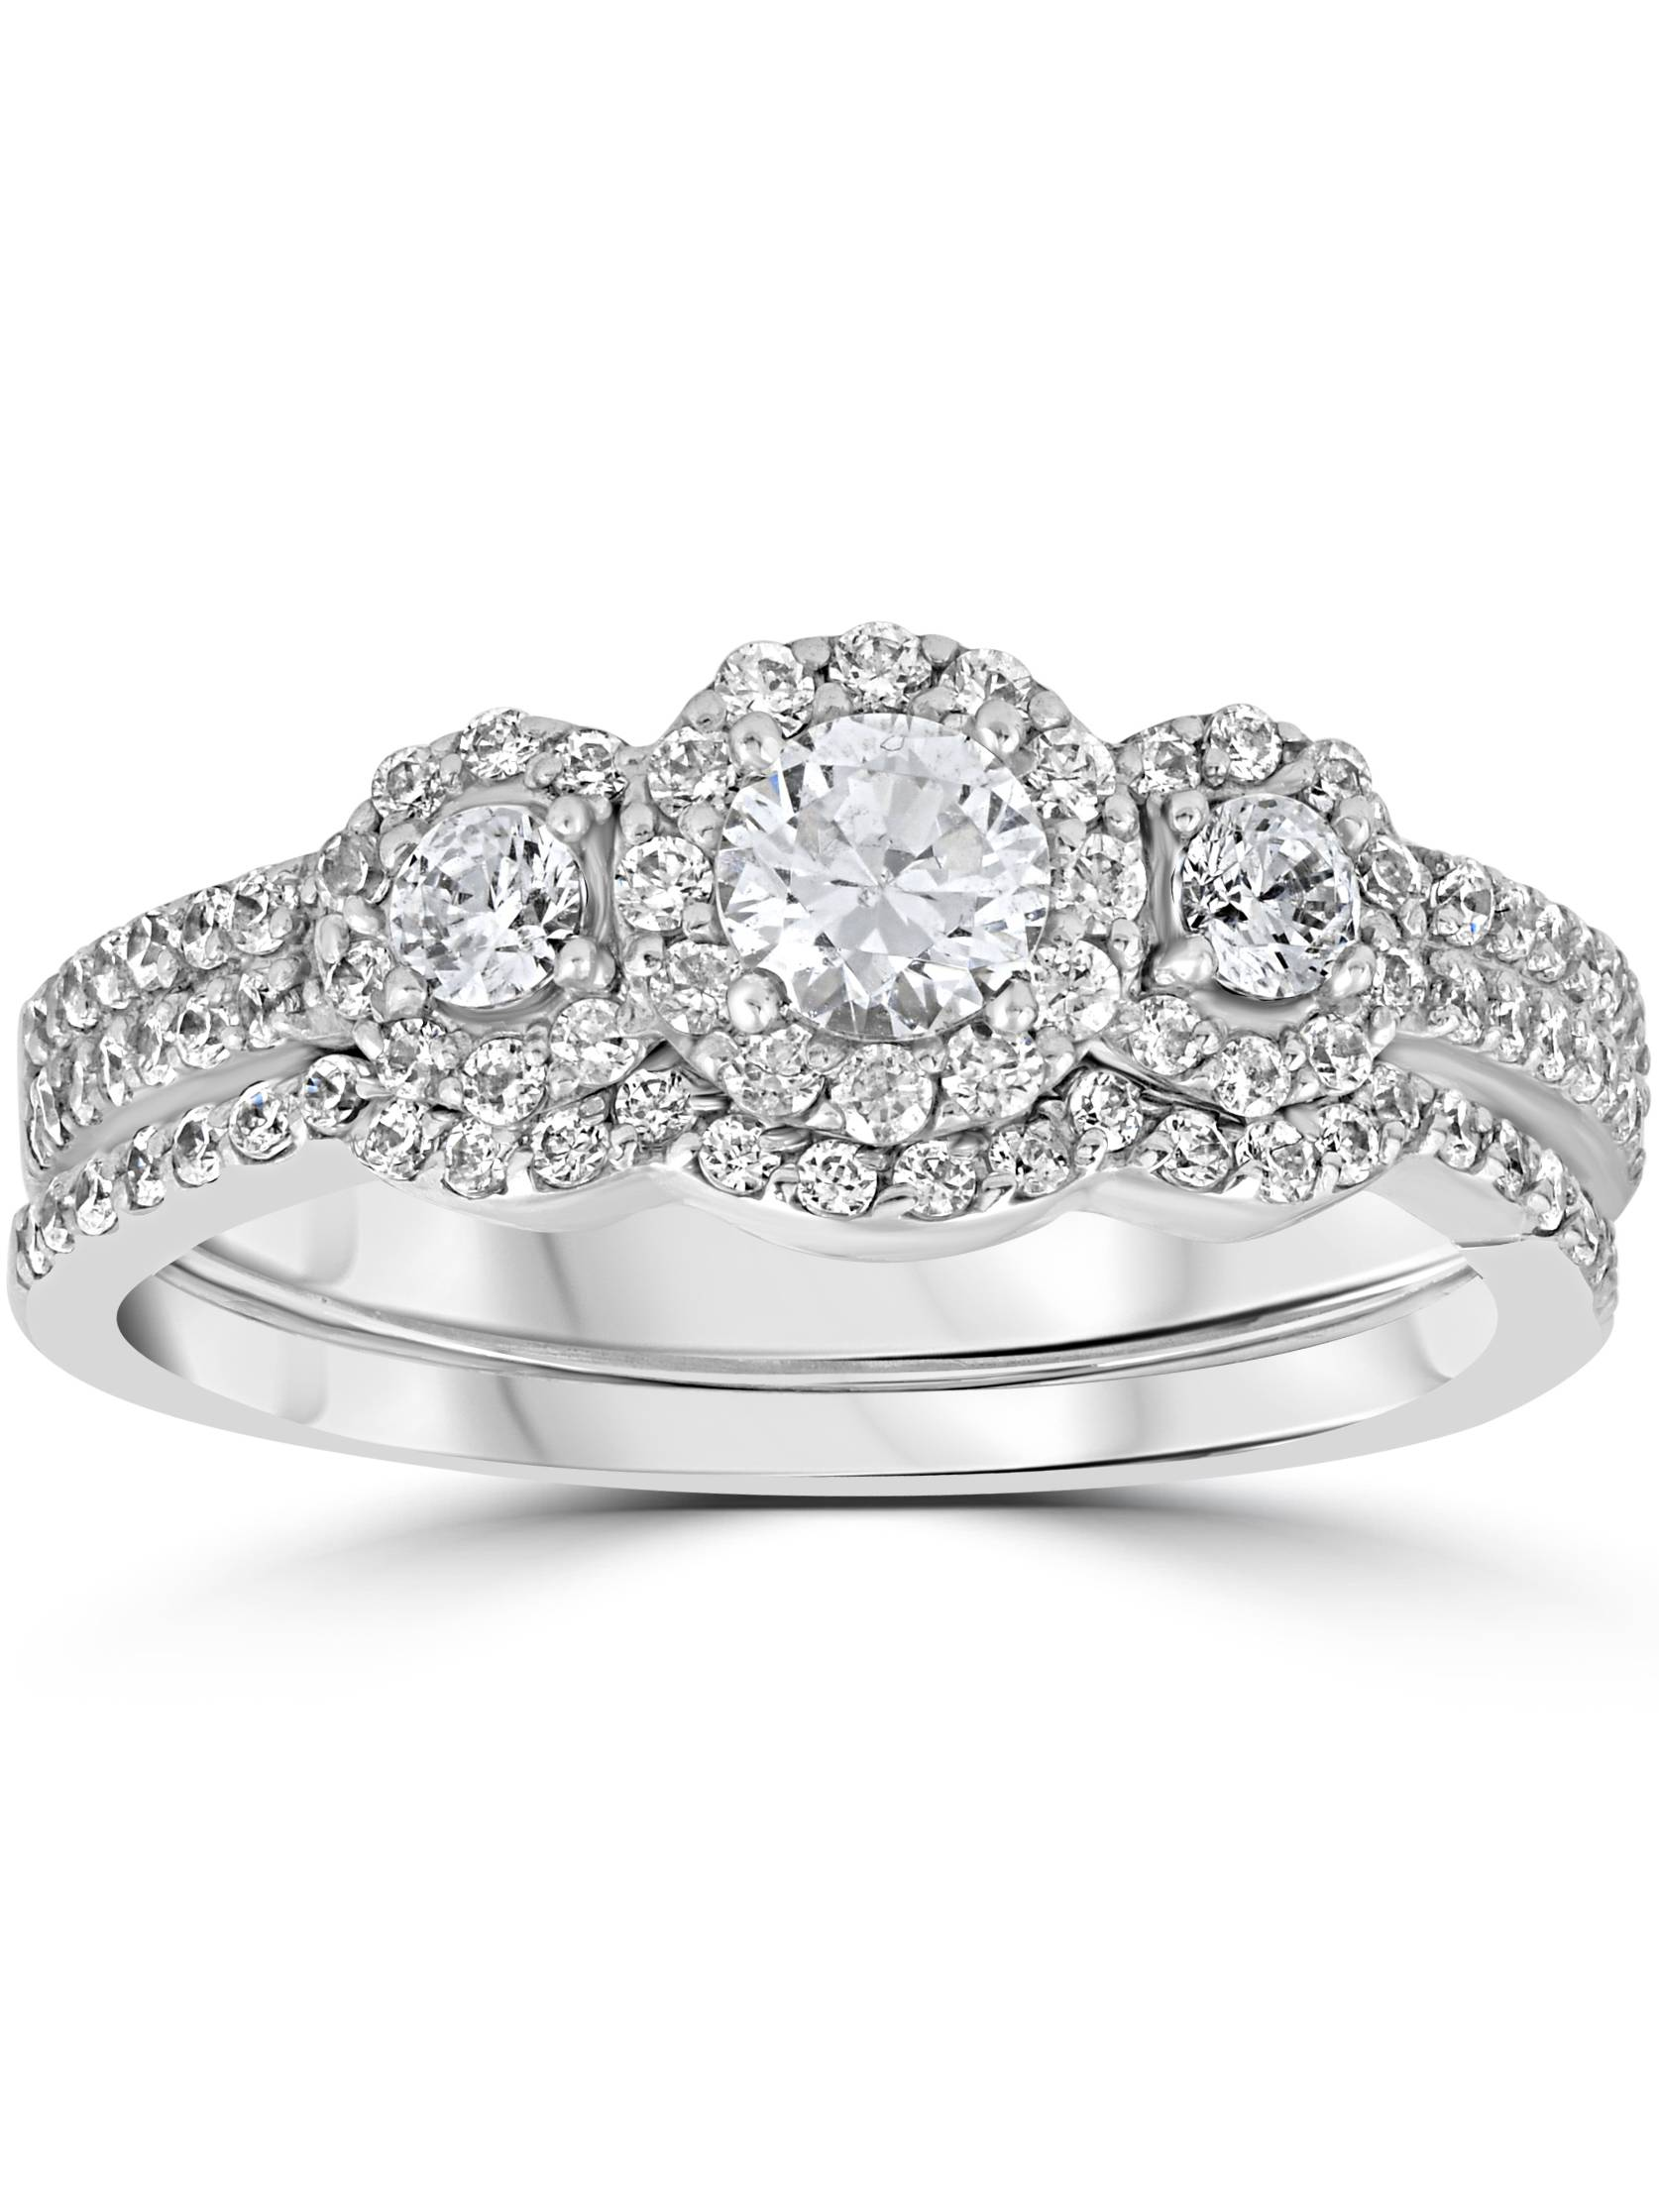 1.00Ct 3 Stone Diamond Engagement Wedding Ring Set 10K White Gold